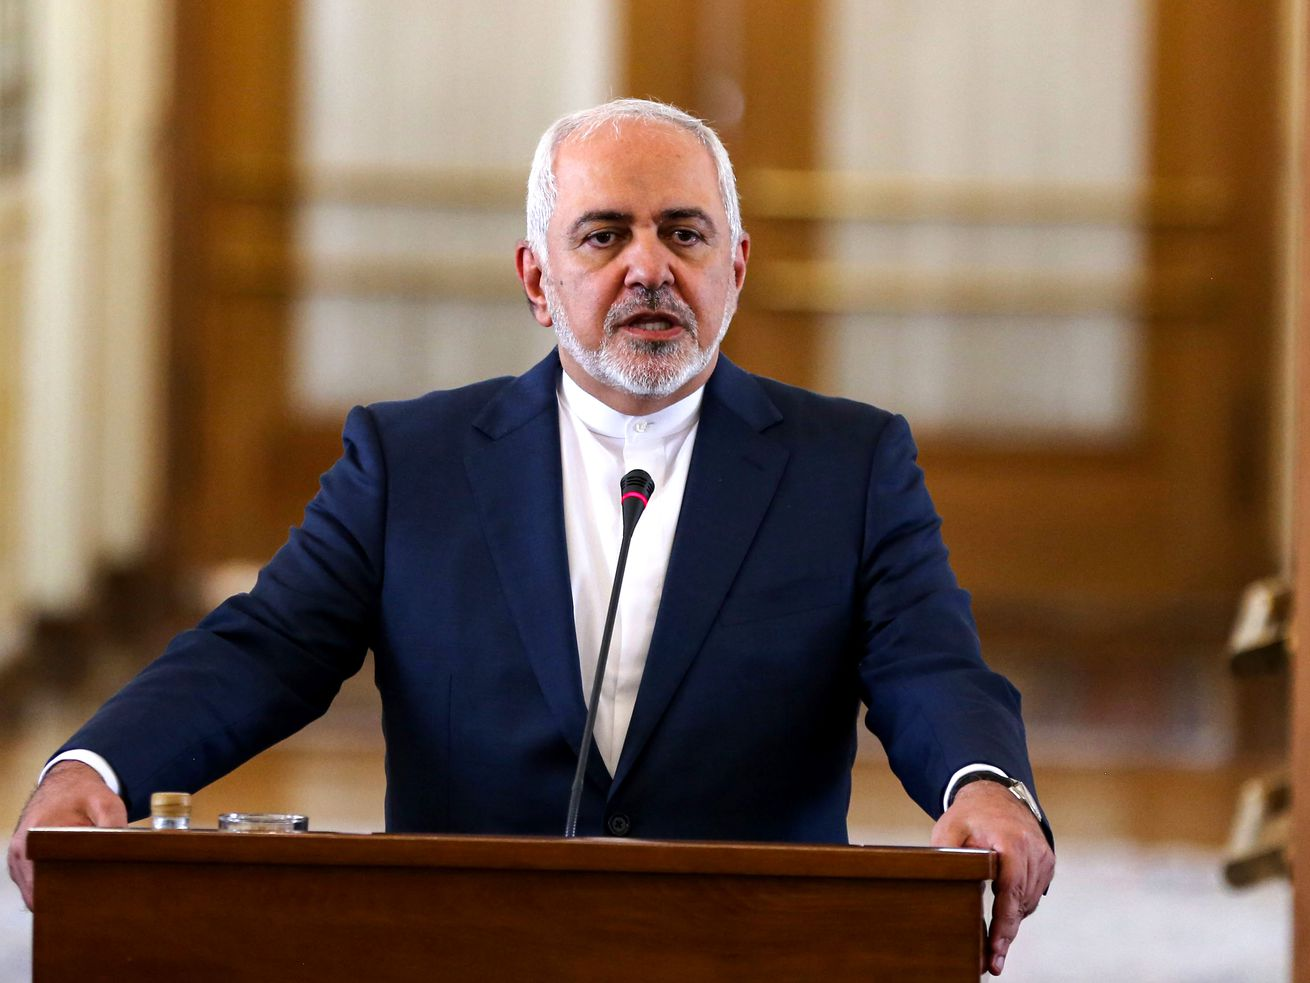 Iran's Foreign Minister Mohammad Javad Zarif at a joint press conference in Tehran on June 10, 2019. He just confirmed that his country violated part of the Iran nuclear deal.